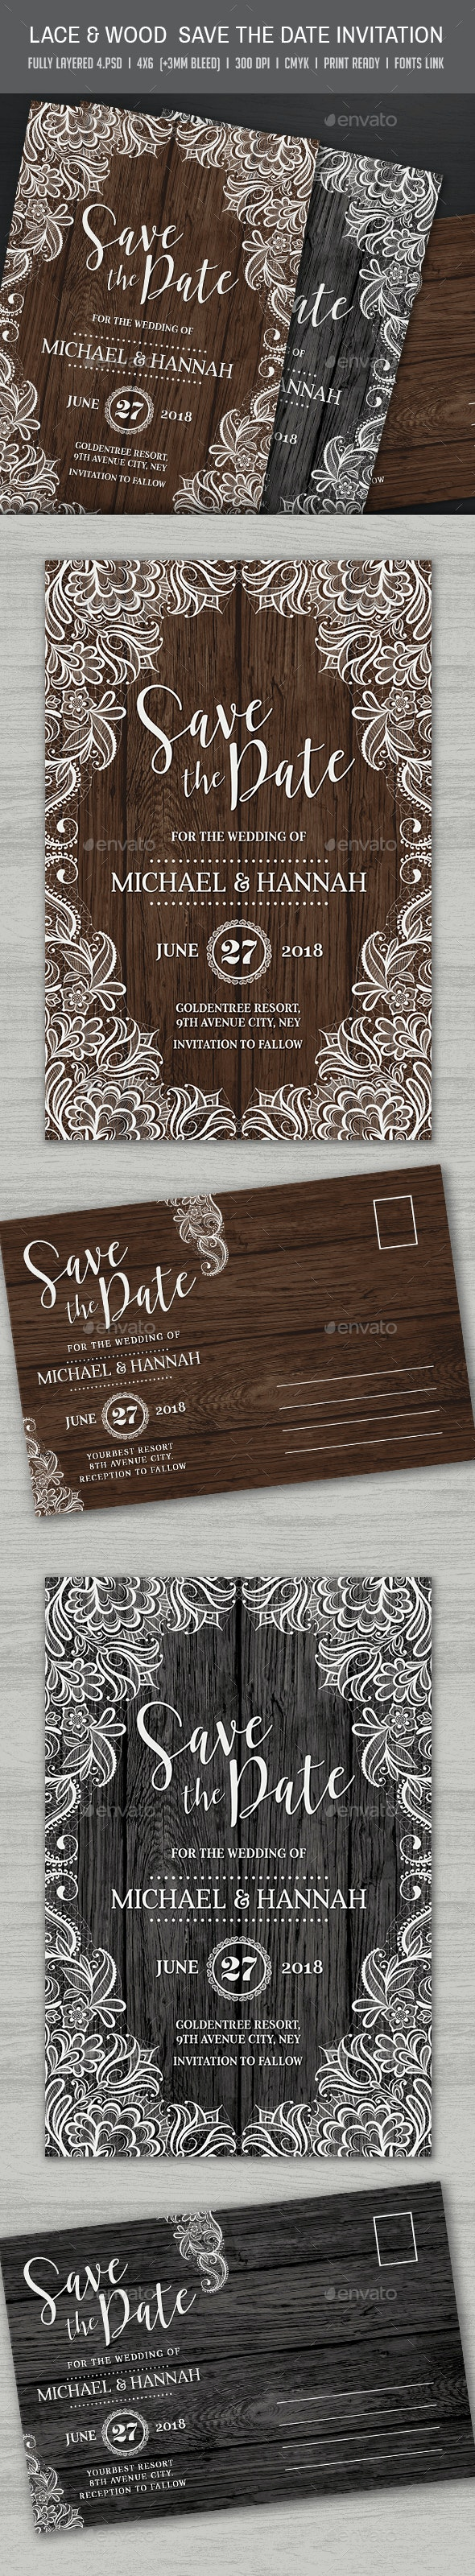 Lace & Wood Save the Date Invitation - Cards & Invites Print Templates